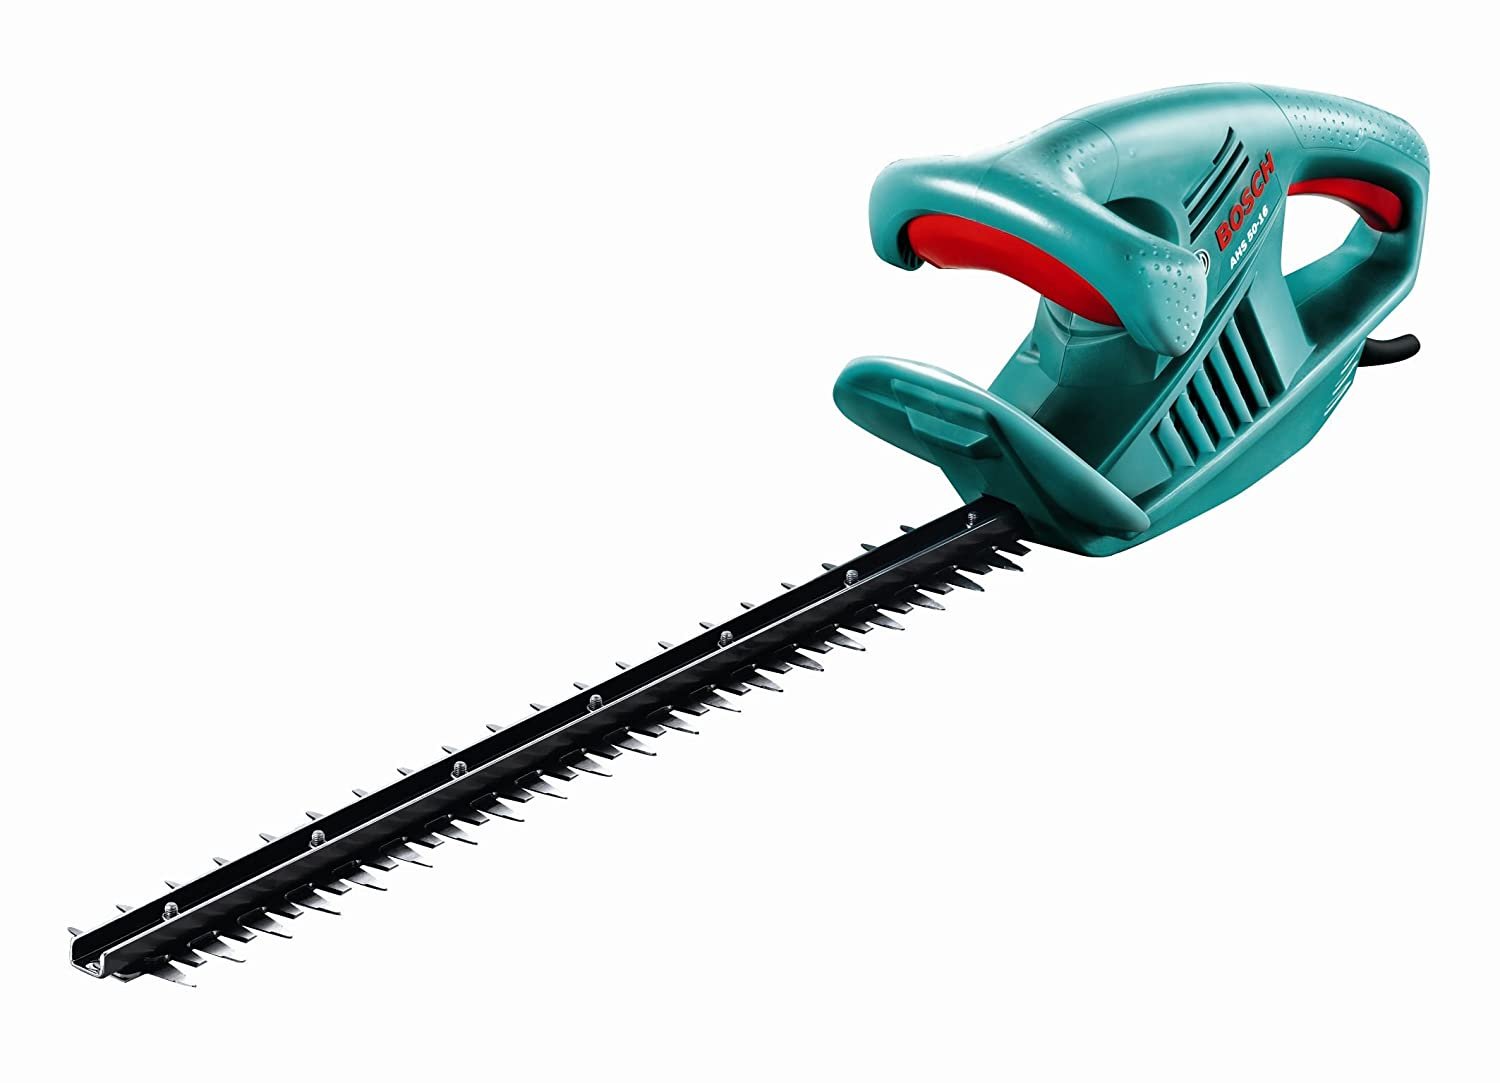 Bosch AHS 45-16 Electric Hedge Cutter, 450 mm Blade Length, 16 mm Tooth Opening 0600847A70